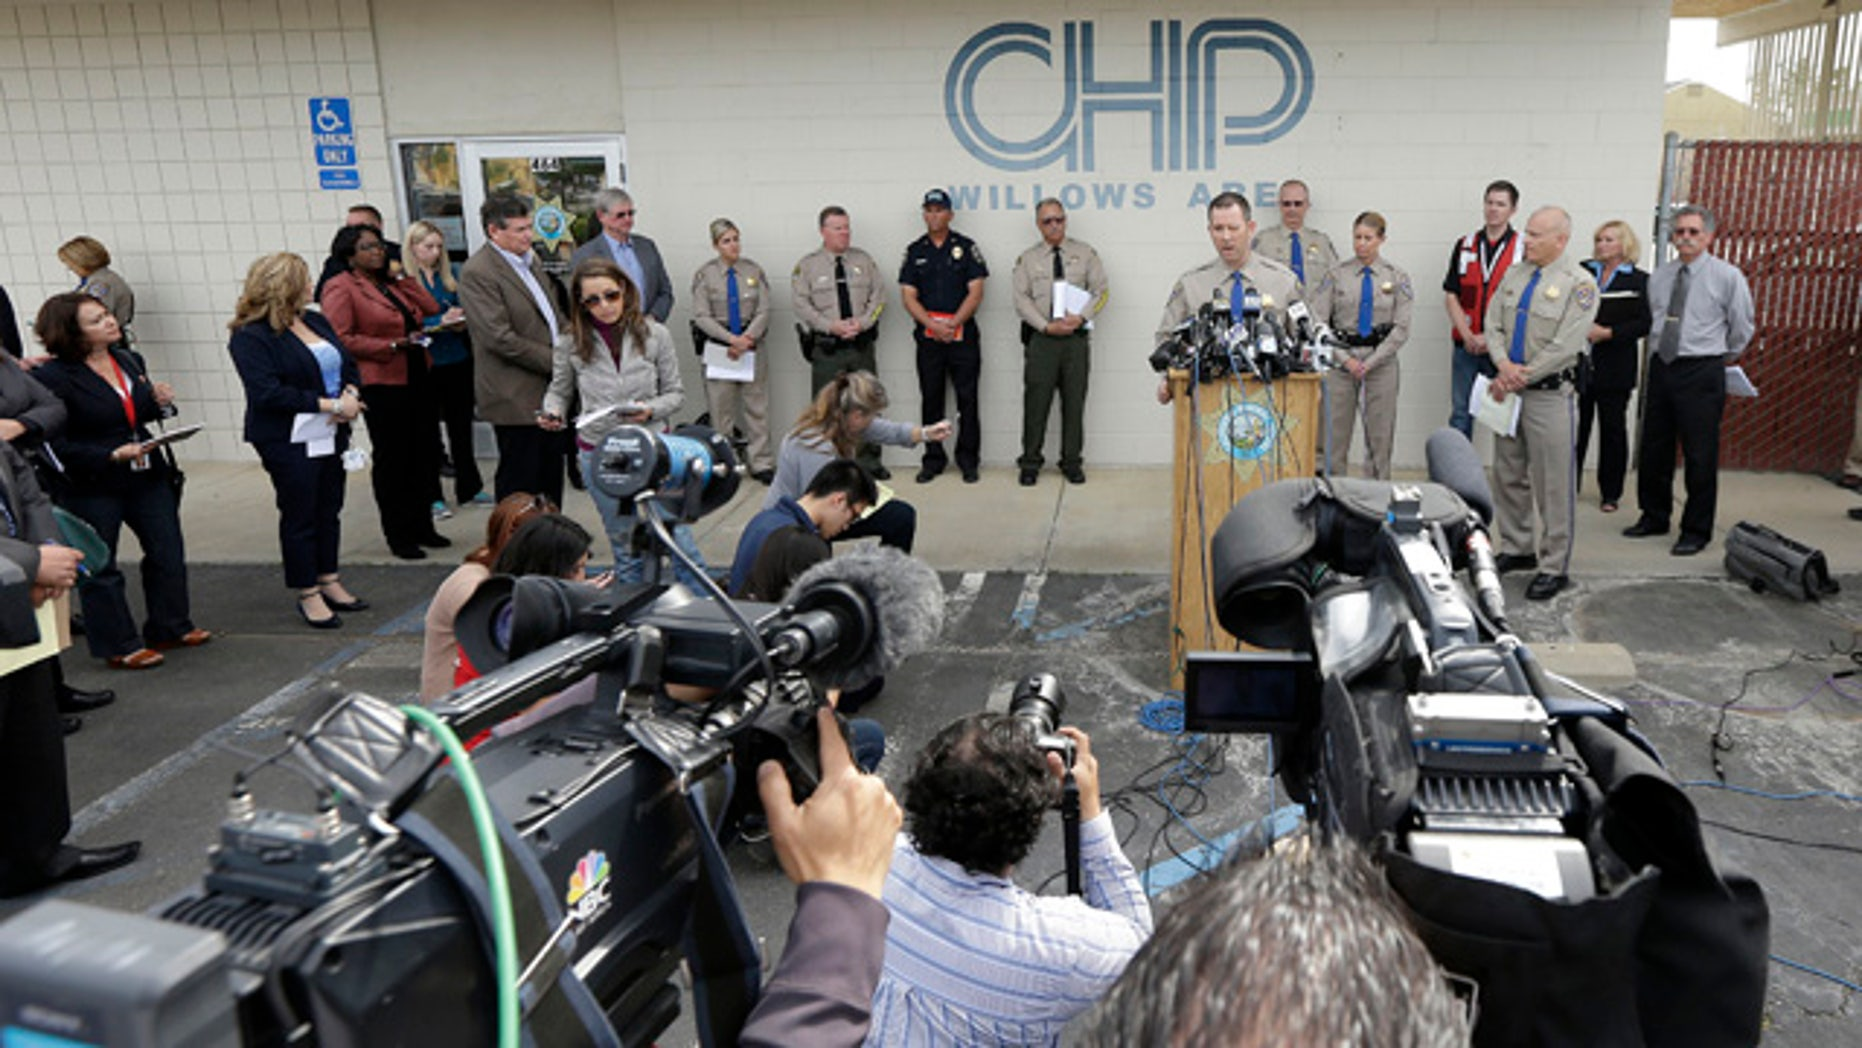 April 11, 2014: California Highway Patrol Multidisciplinary Accident Investigation Team Lt. Scott Fredrick, center right, speaks at a news conference in Willows, Calif. At least ten people were killed and dozens injured in the fiery crash between a FedEx truck and a bus carrying high school students on a visit to a Northern California College. (AP Photo/Jeff Chiu)